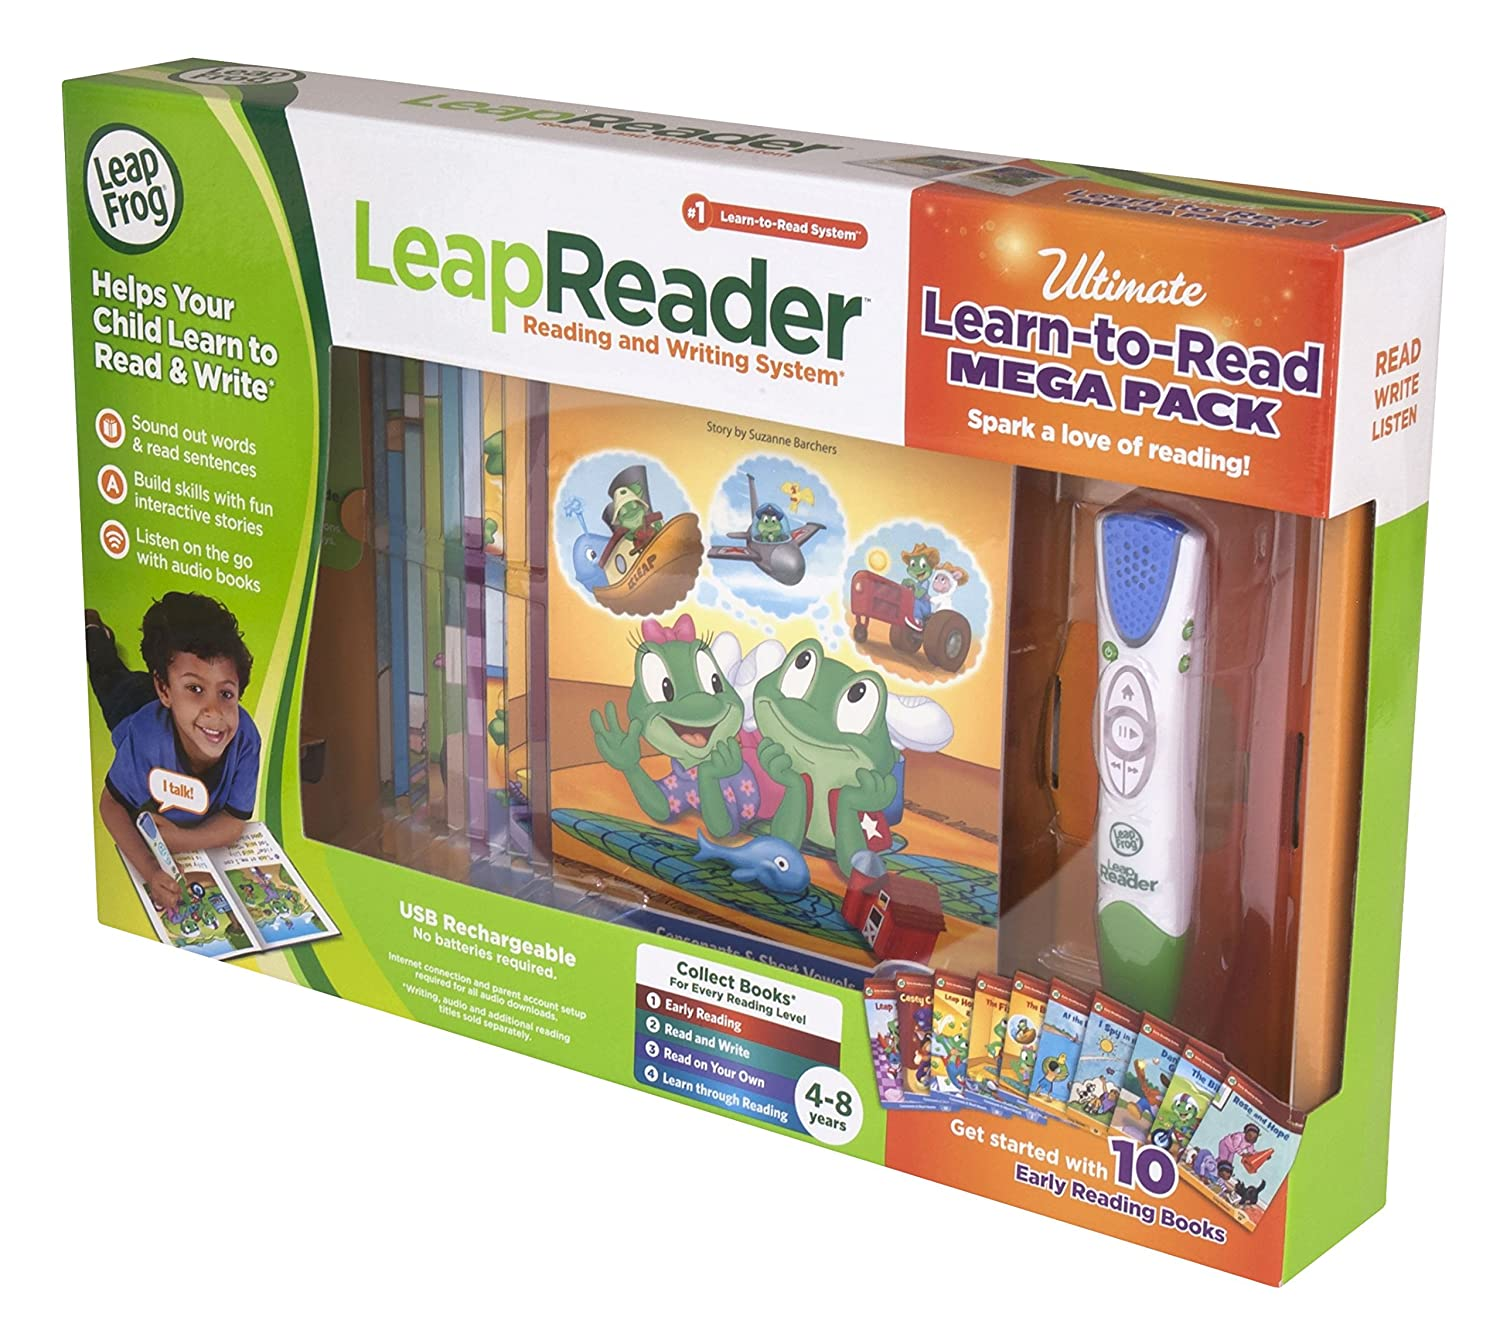 Amazon.com: LeapFrog LeapReader System Learning to Read ...